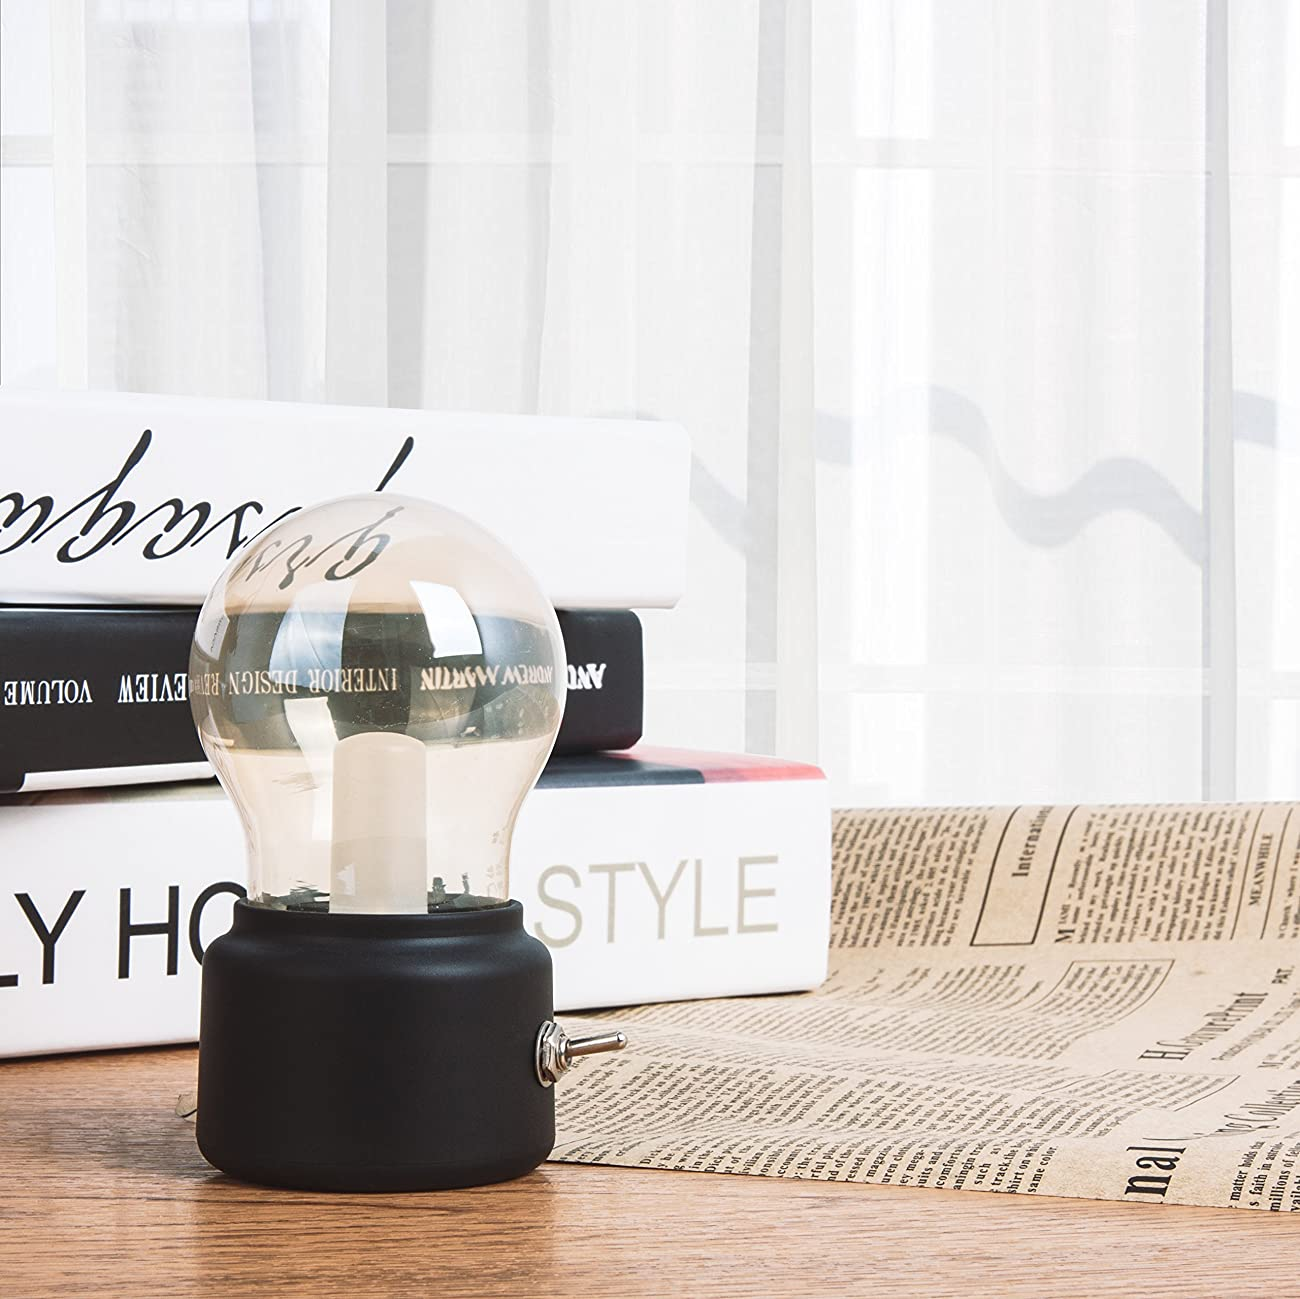 Veesee LED Vintage Light Bulb Rechargeable Night Light Safety USB Energy Saving Low Voltage Portable for Home Desk Table Tea Travel (Black) 4